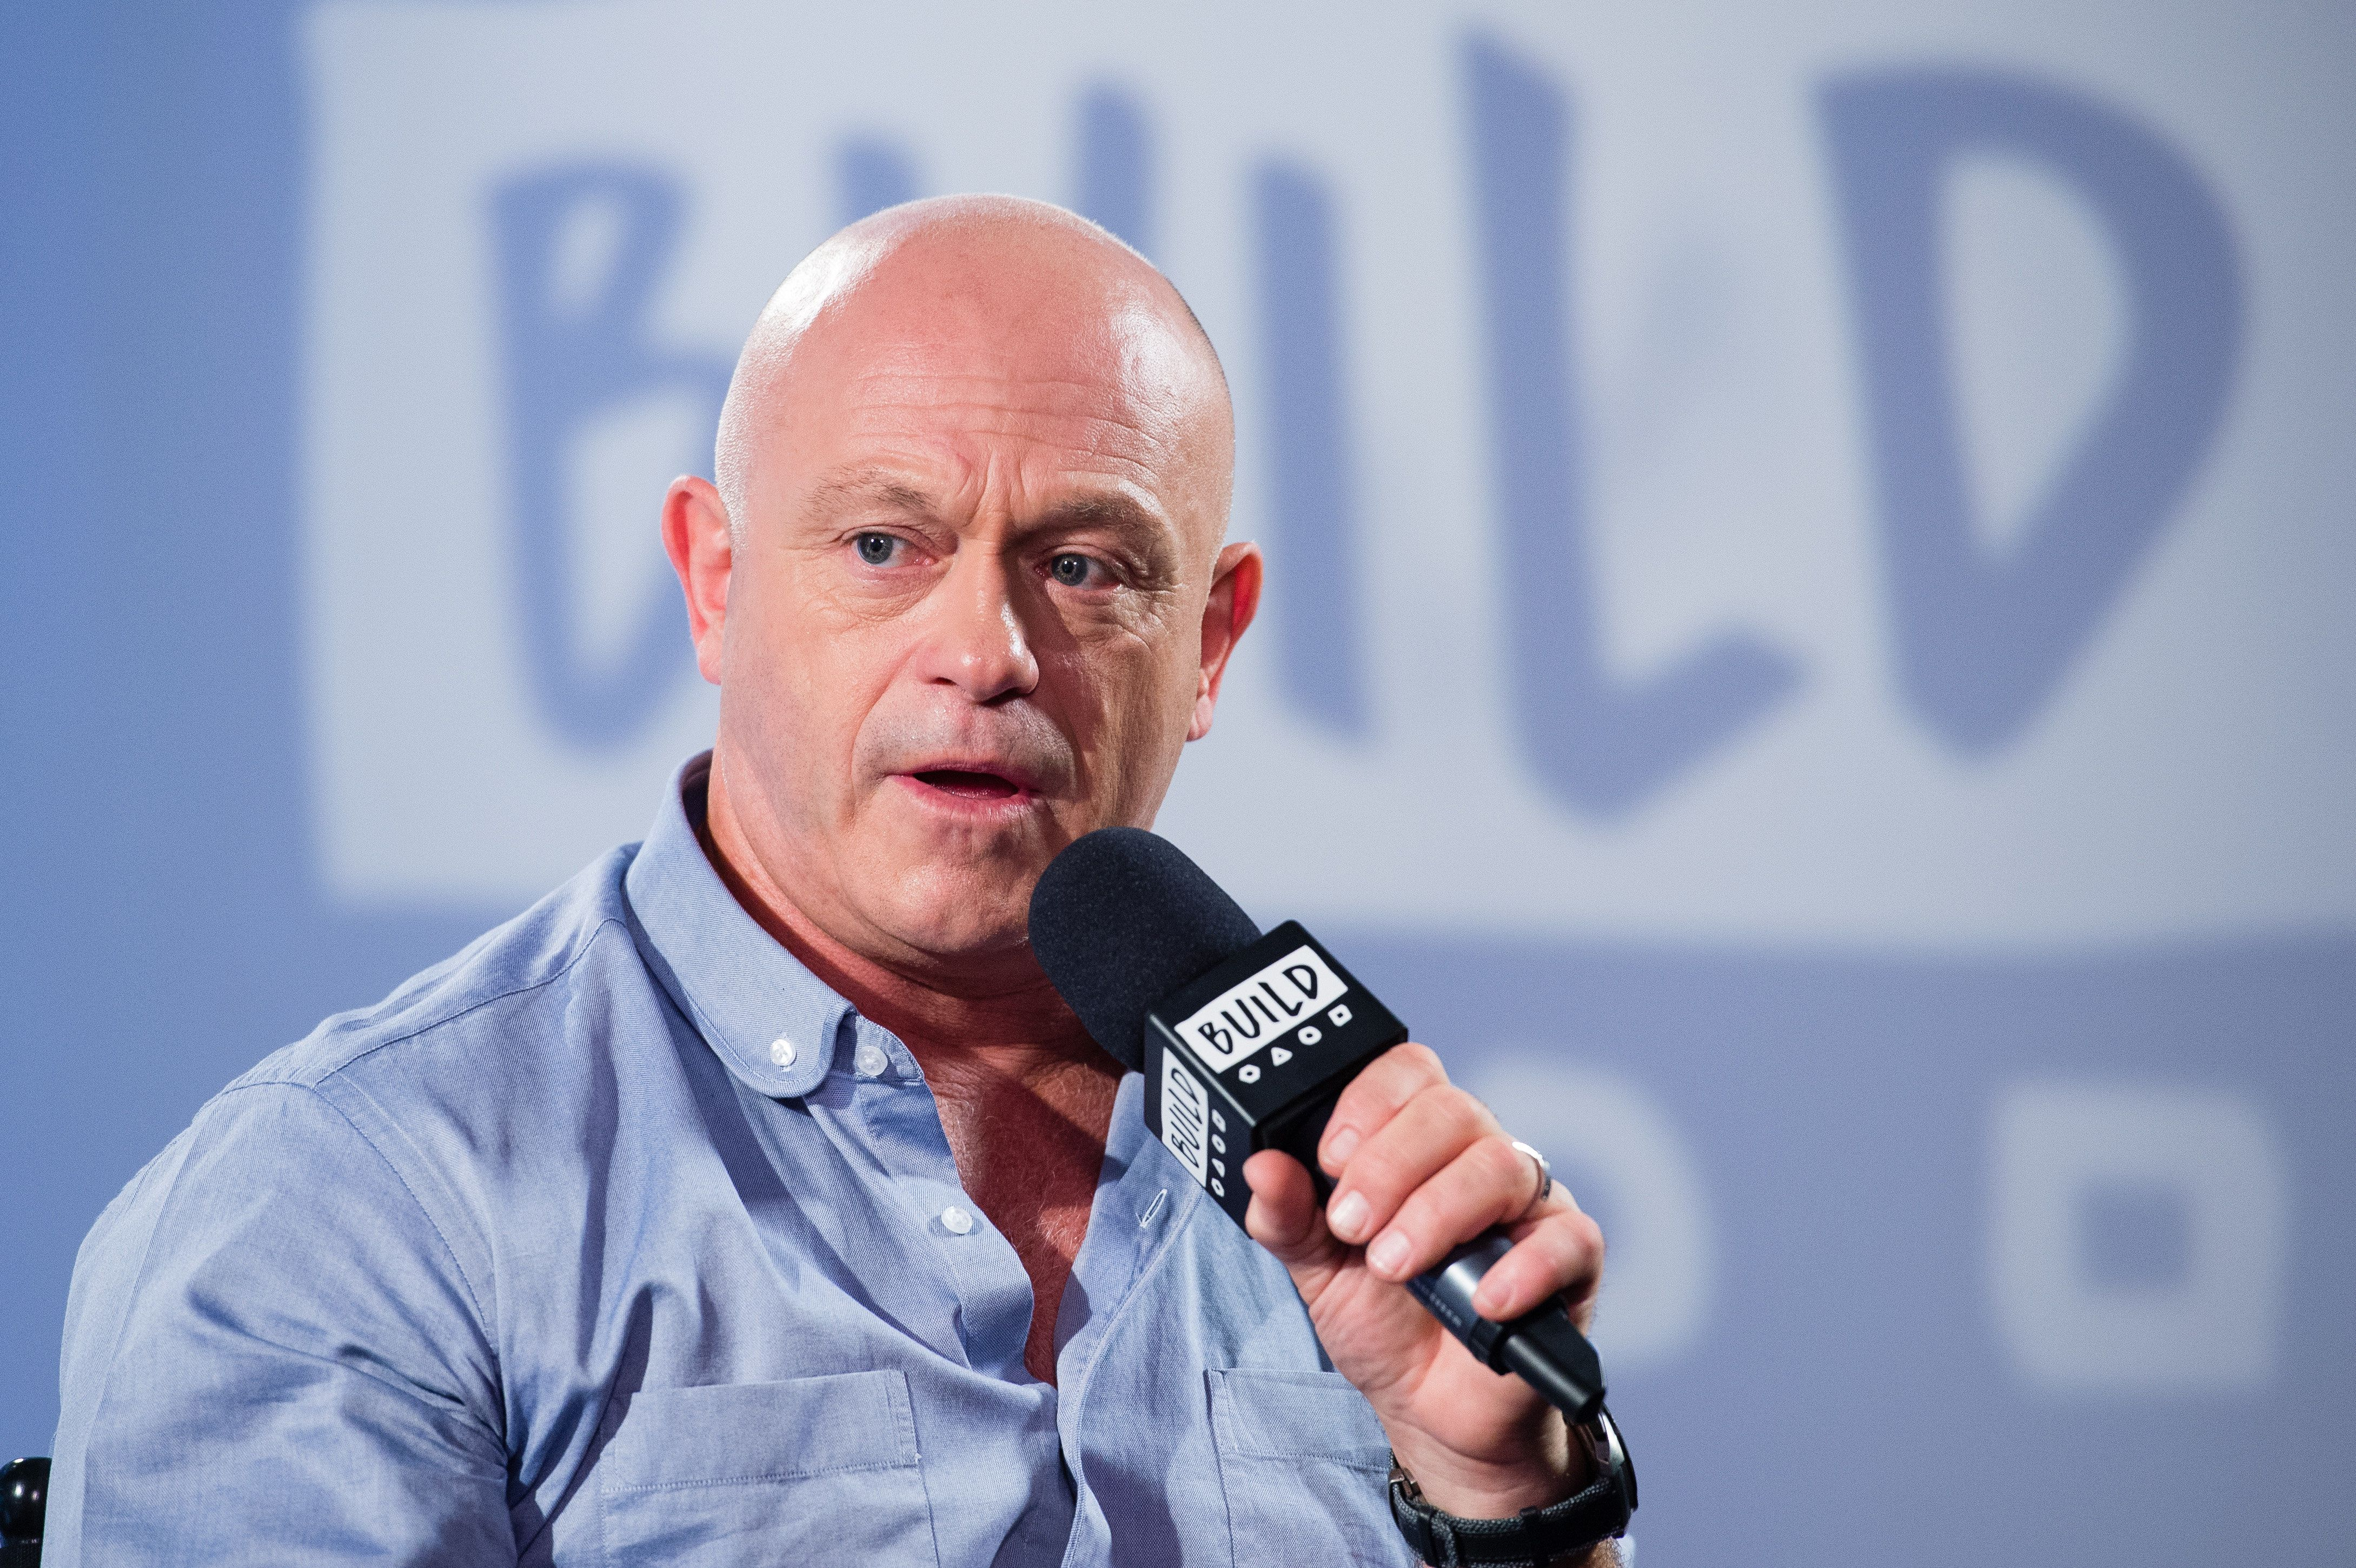 Ross Kemp Calls For Voting To Be Made Mandatory In The